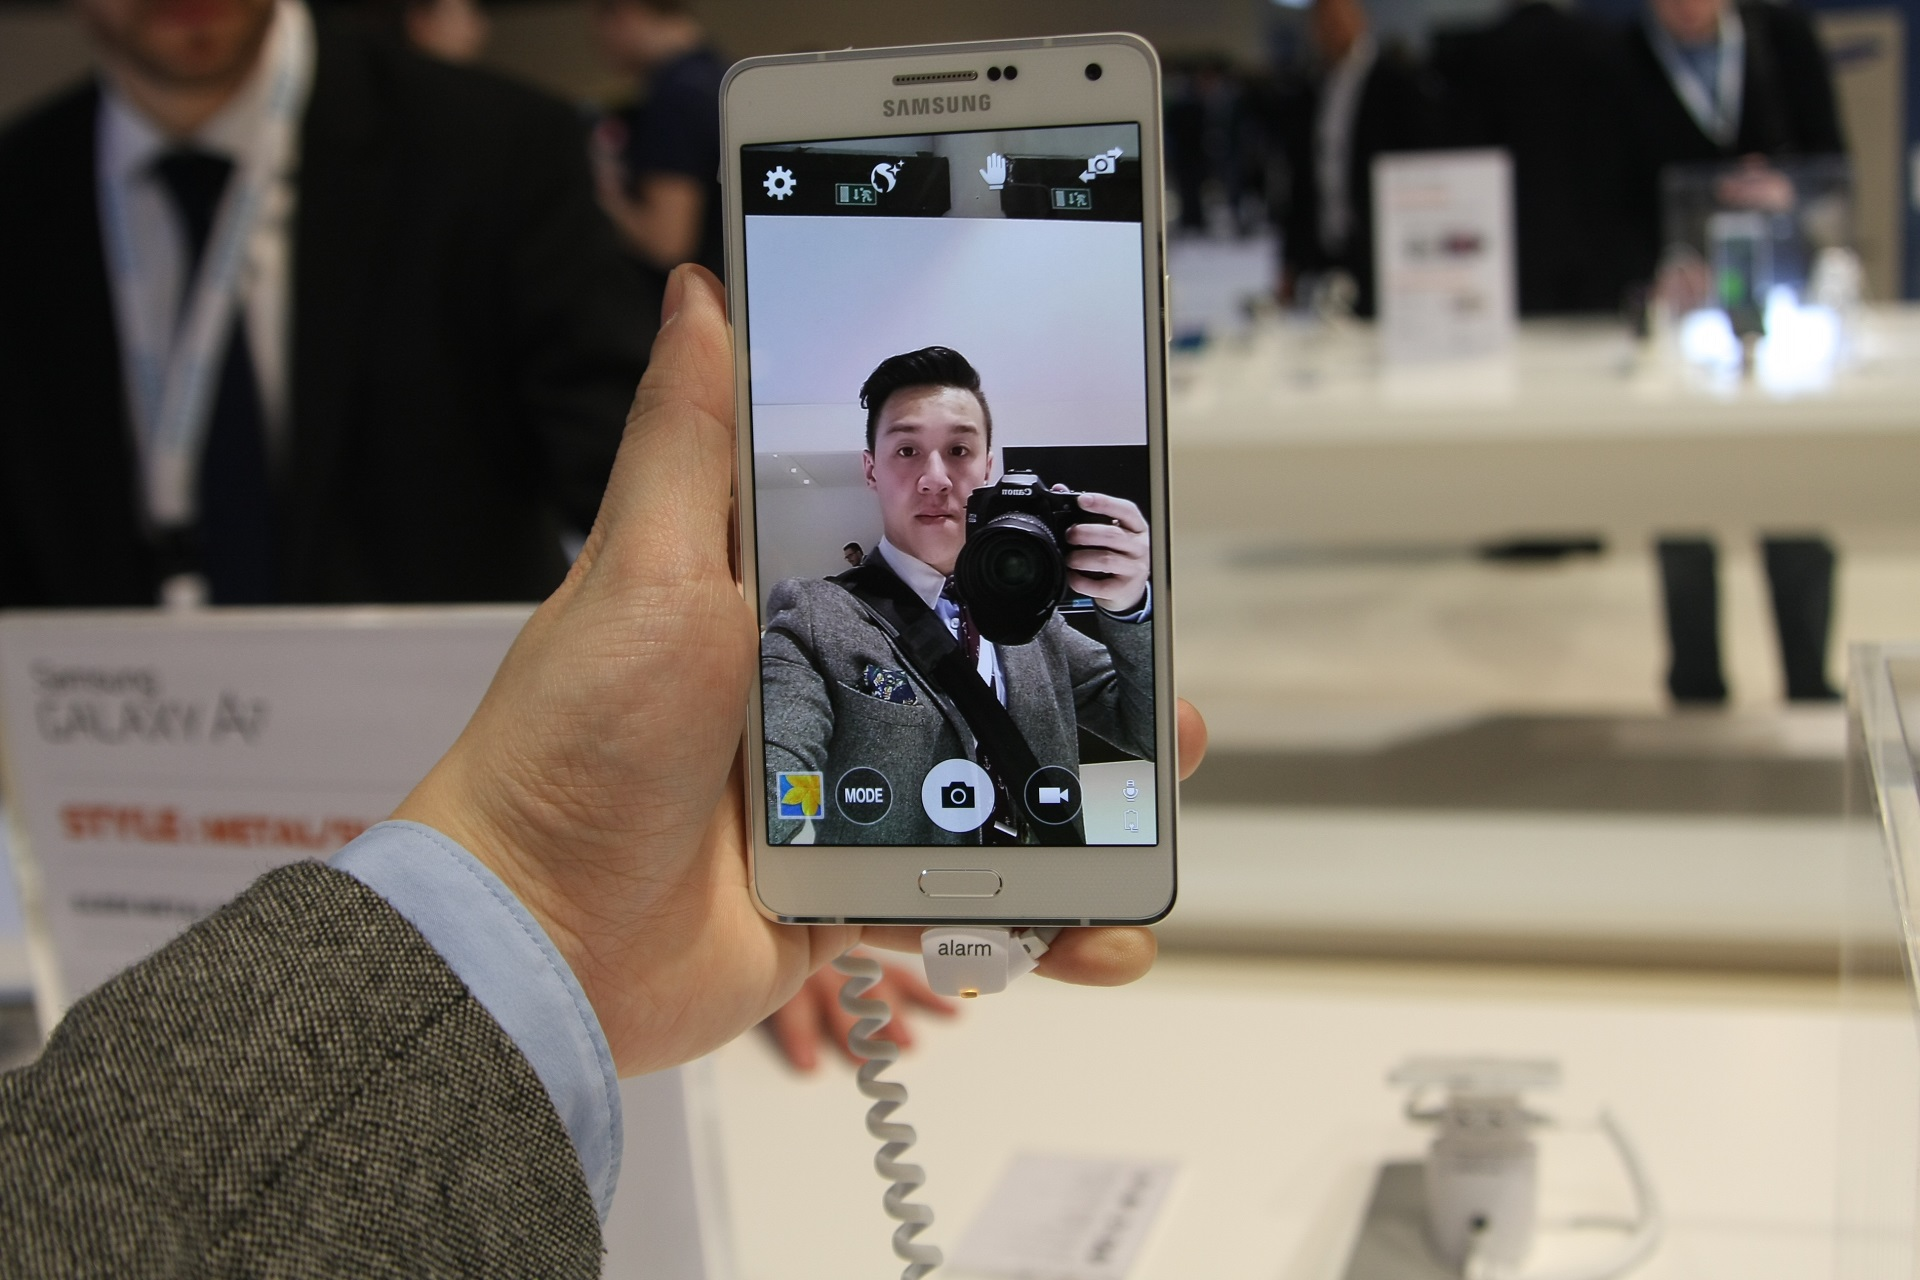 Samsung Galaxy A7 Continues the Trend of Metal Material and Solid Build